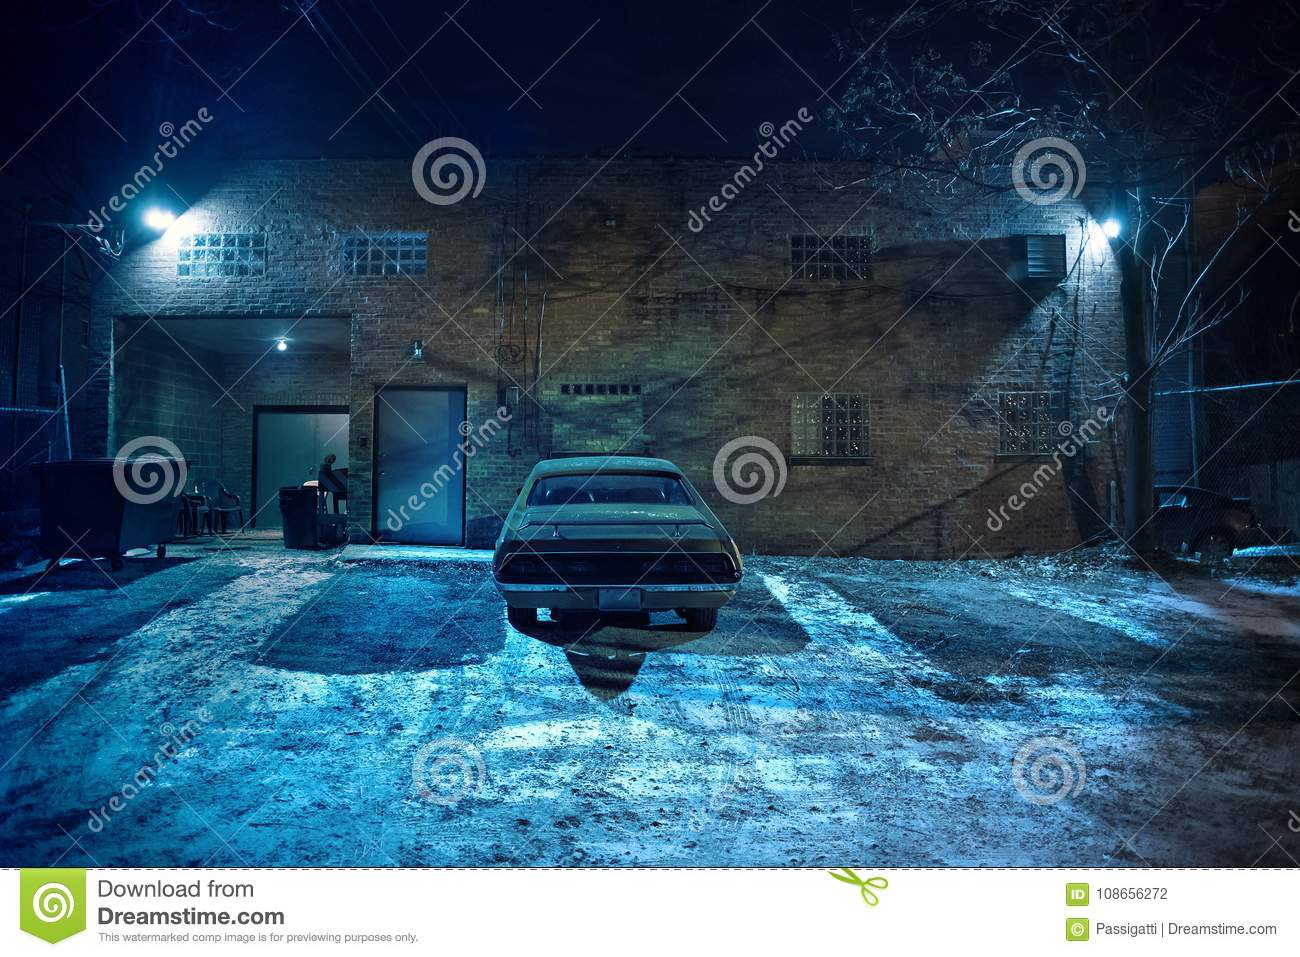 Vintage Muscle Car In A Dark Chicago City Urban Alley Stock Photo